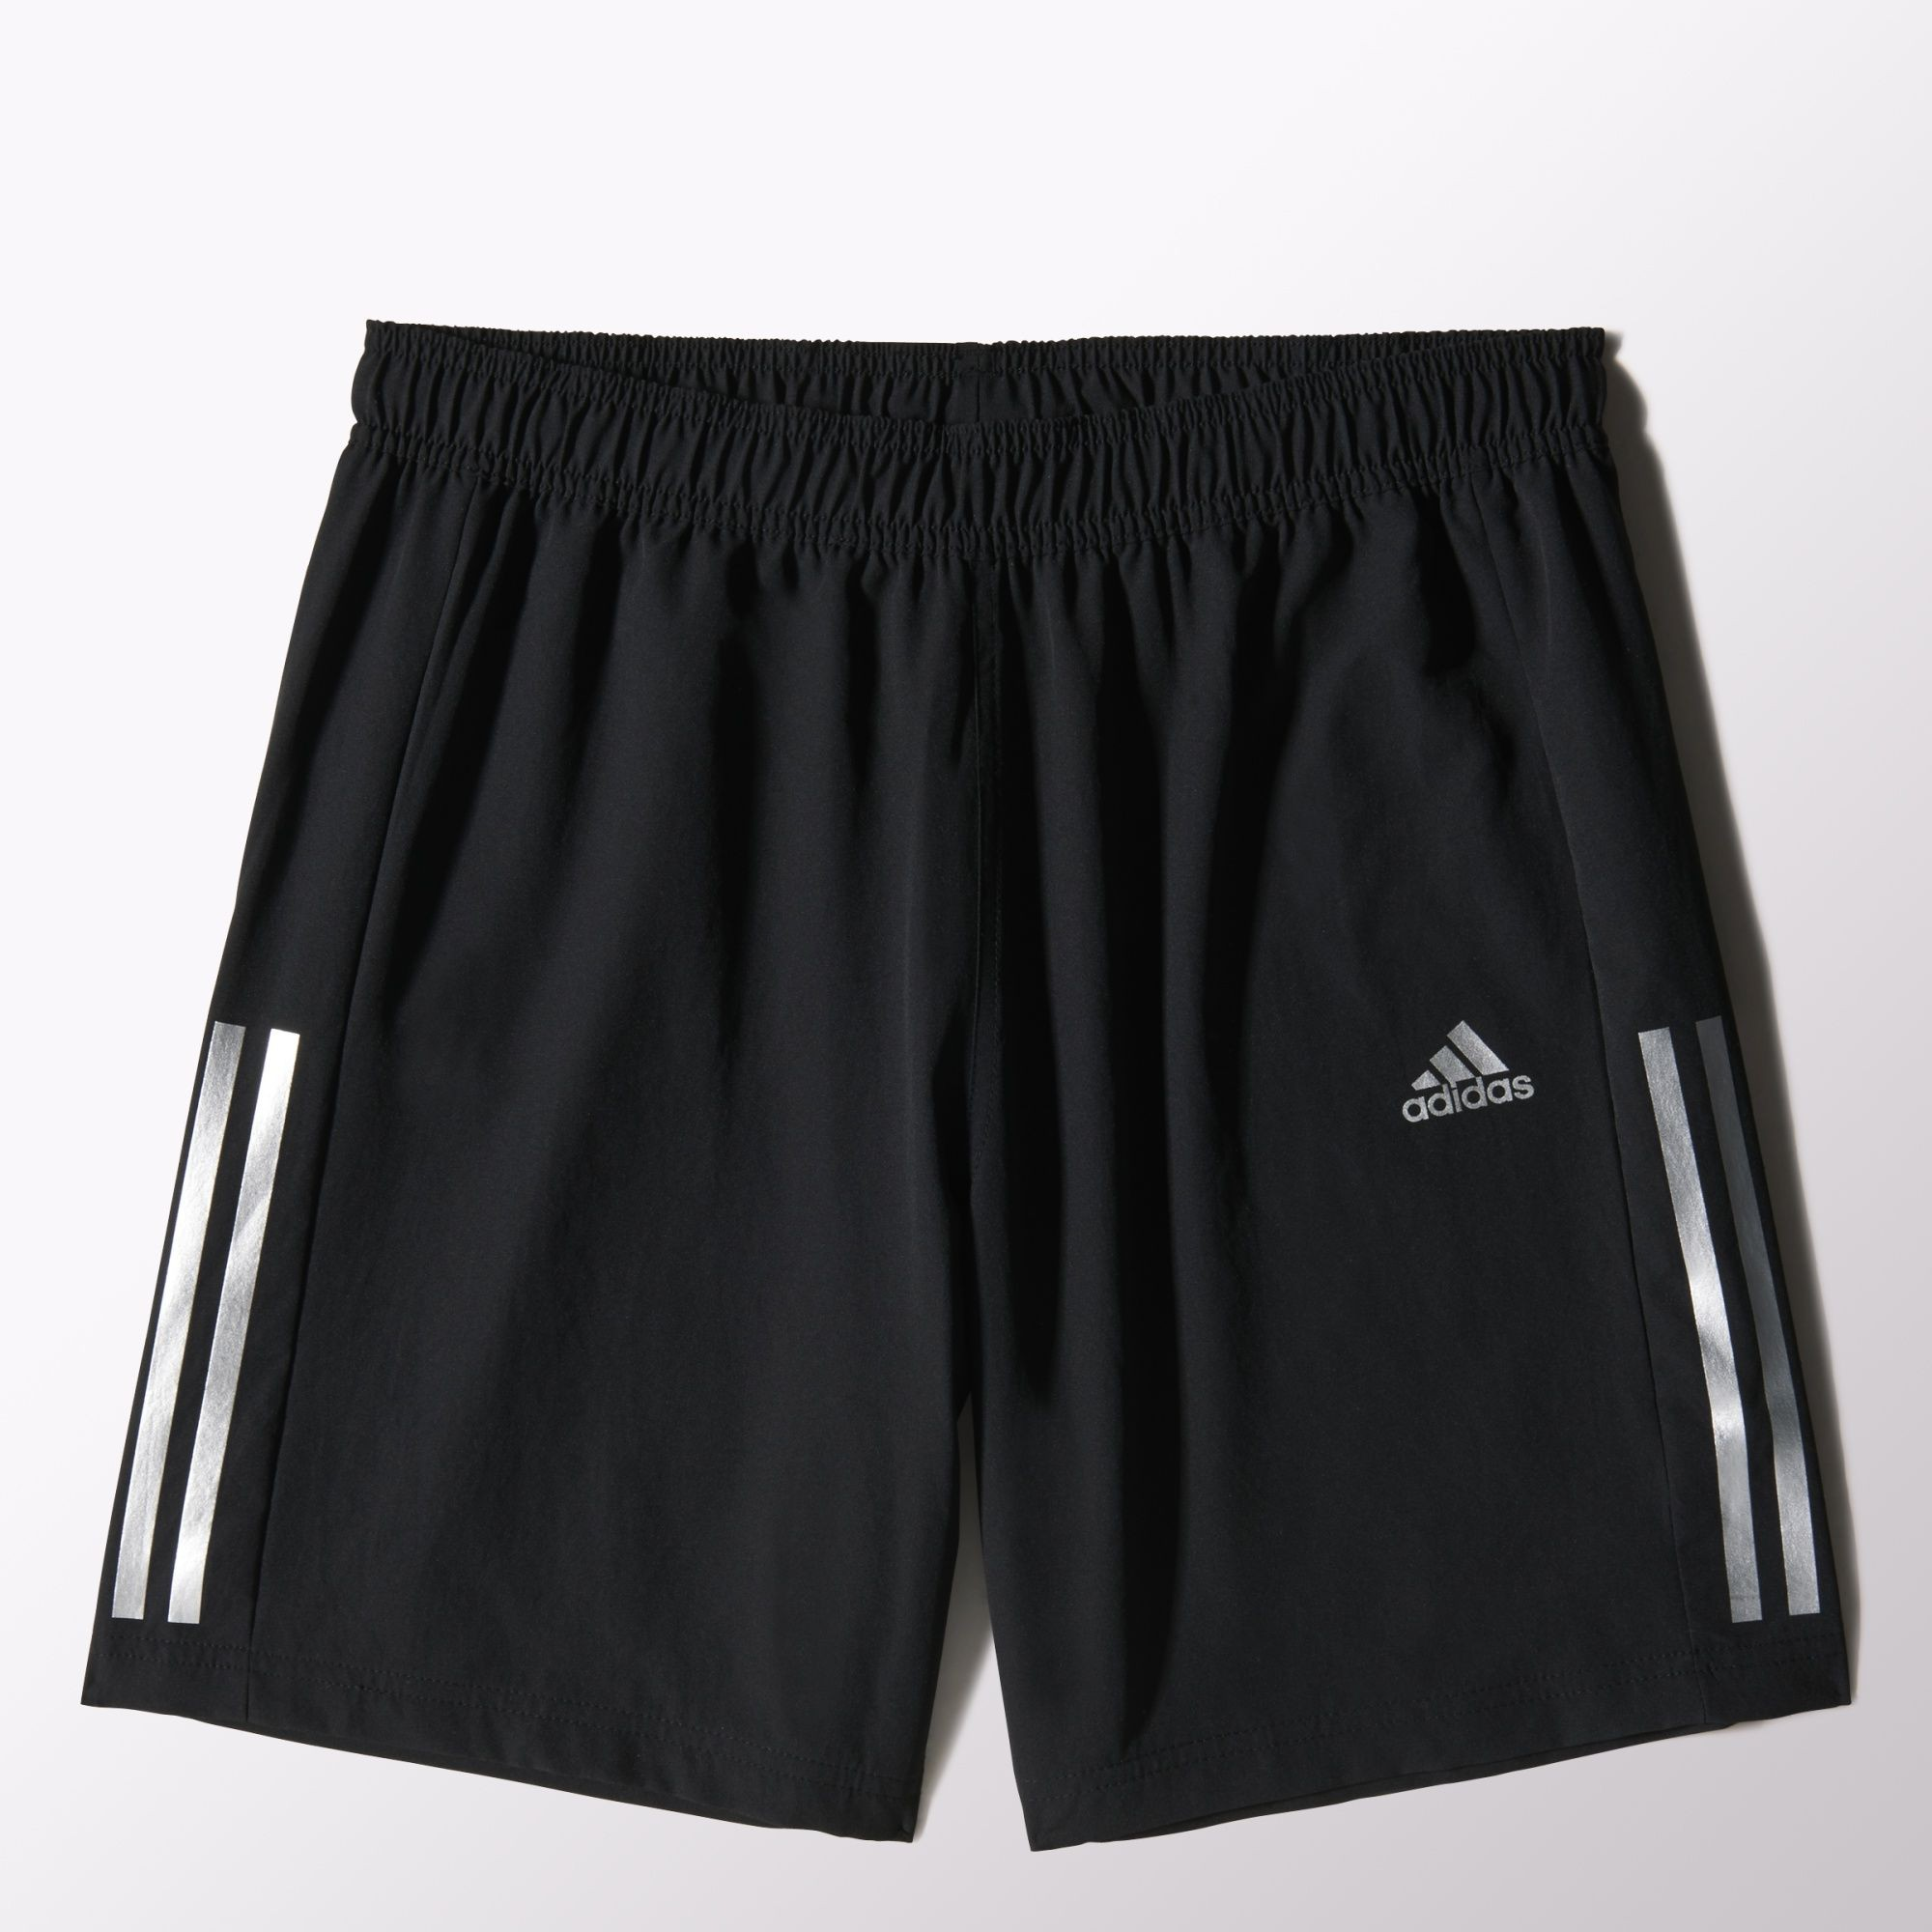 new product 70419 226bc Short Adidas Climacool Negro Gris Hombre - Indumentaria ...